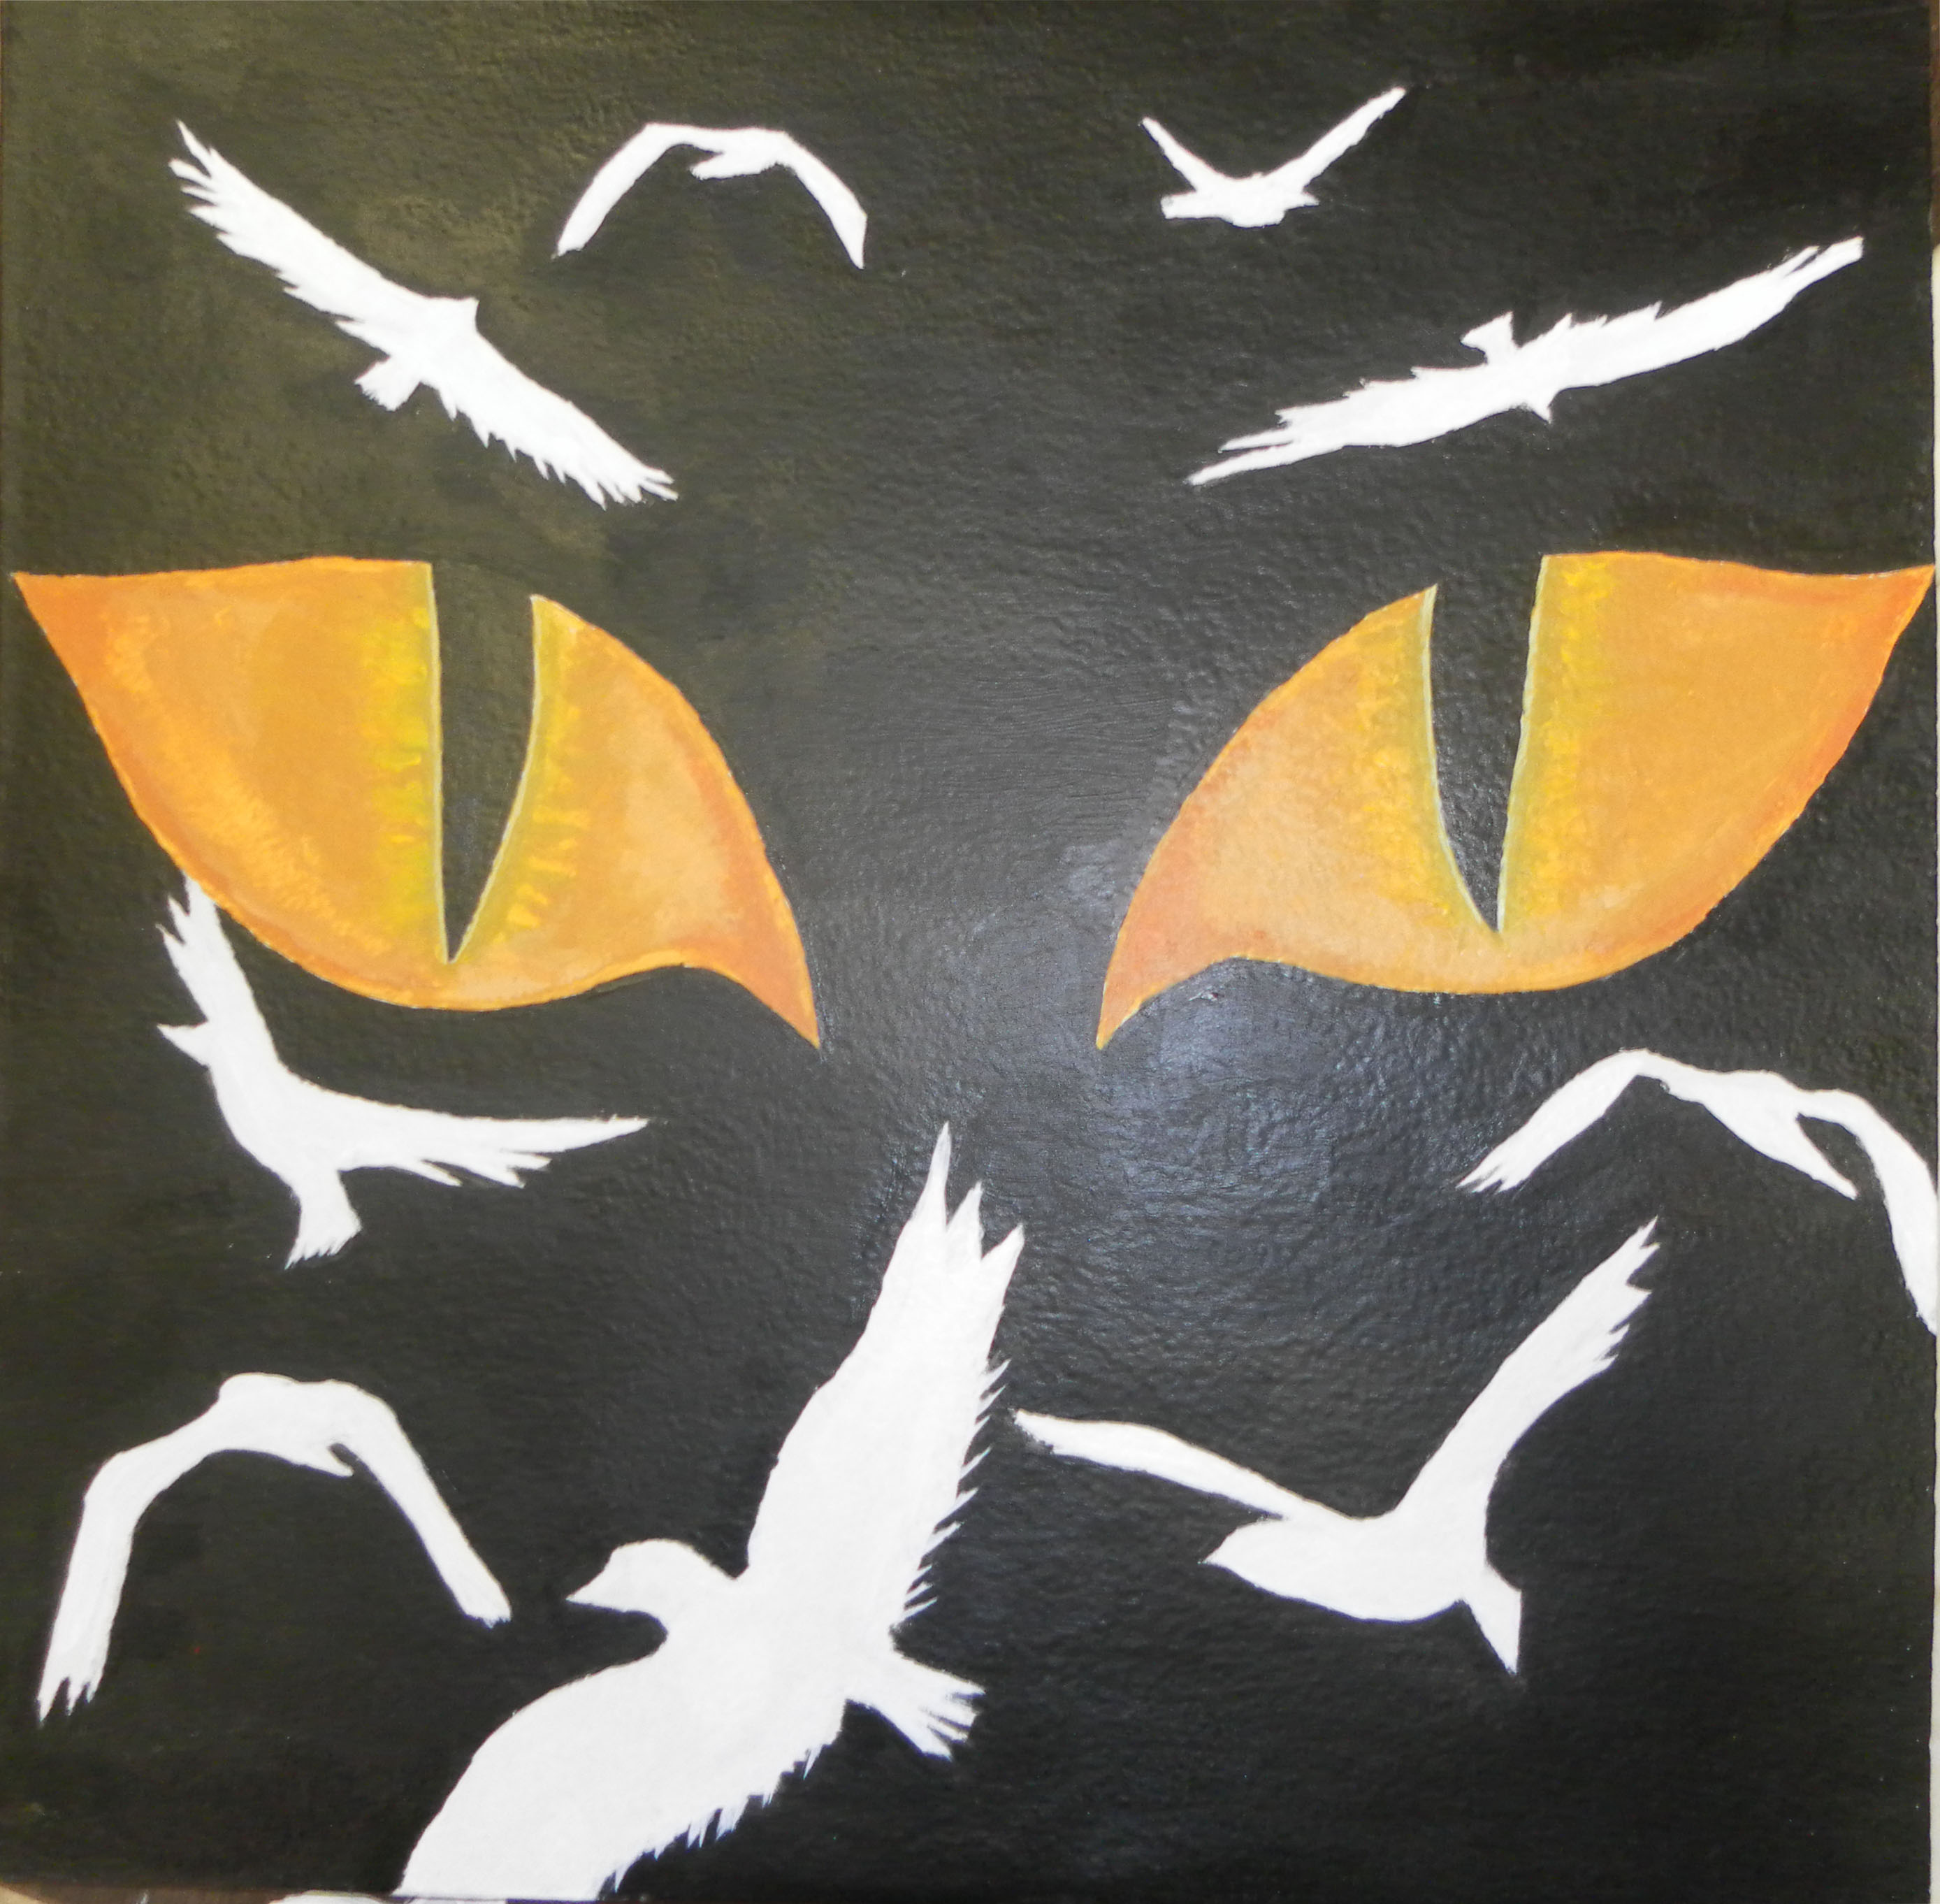 Students up-cycled art showing two bright allow eyes on black background surrounded by white birds